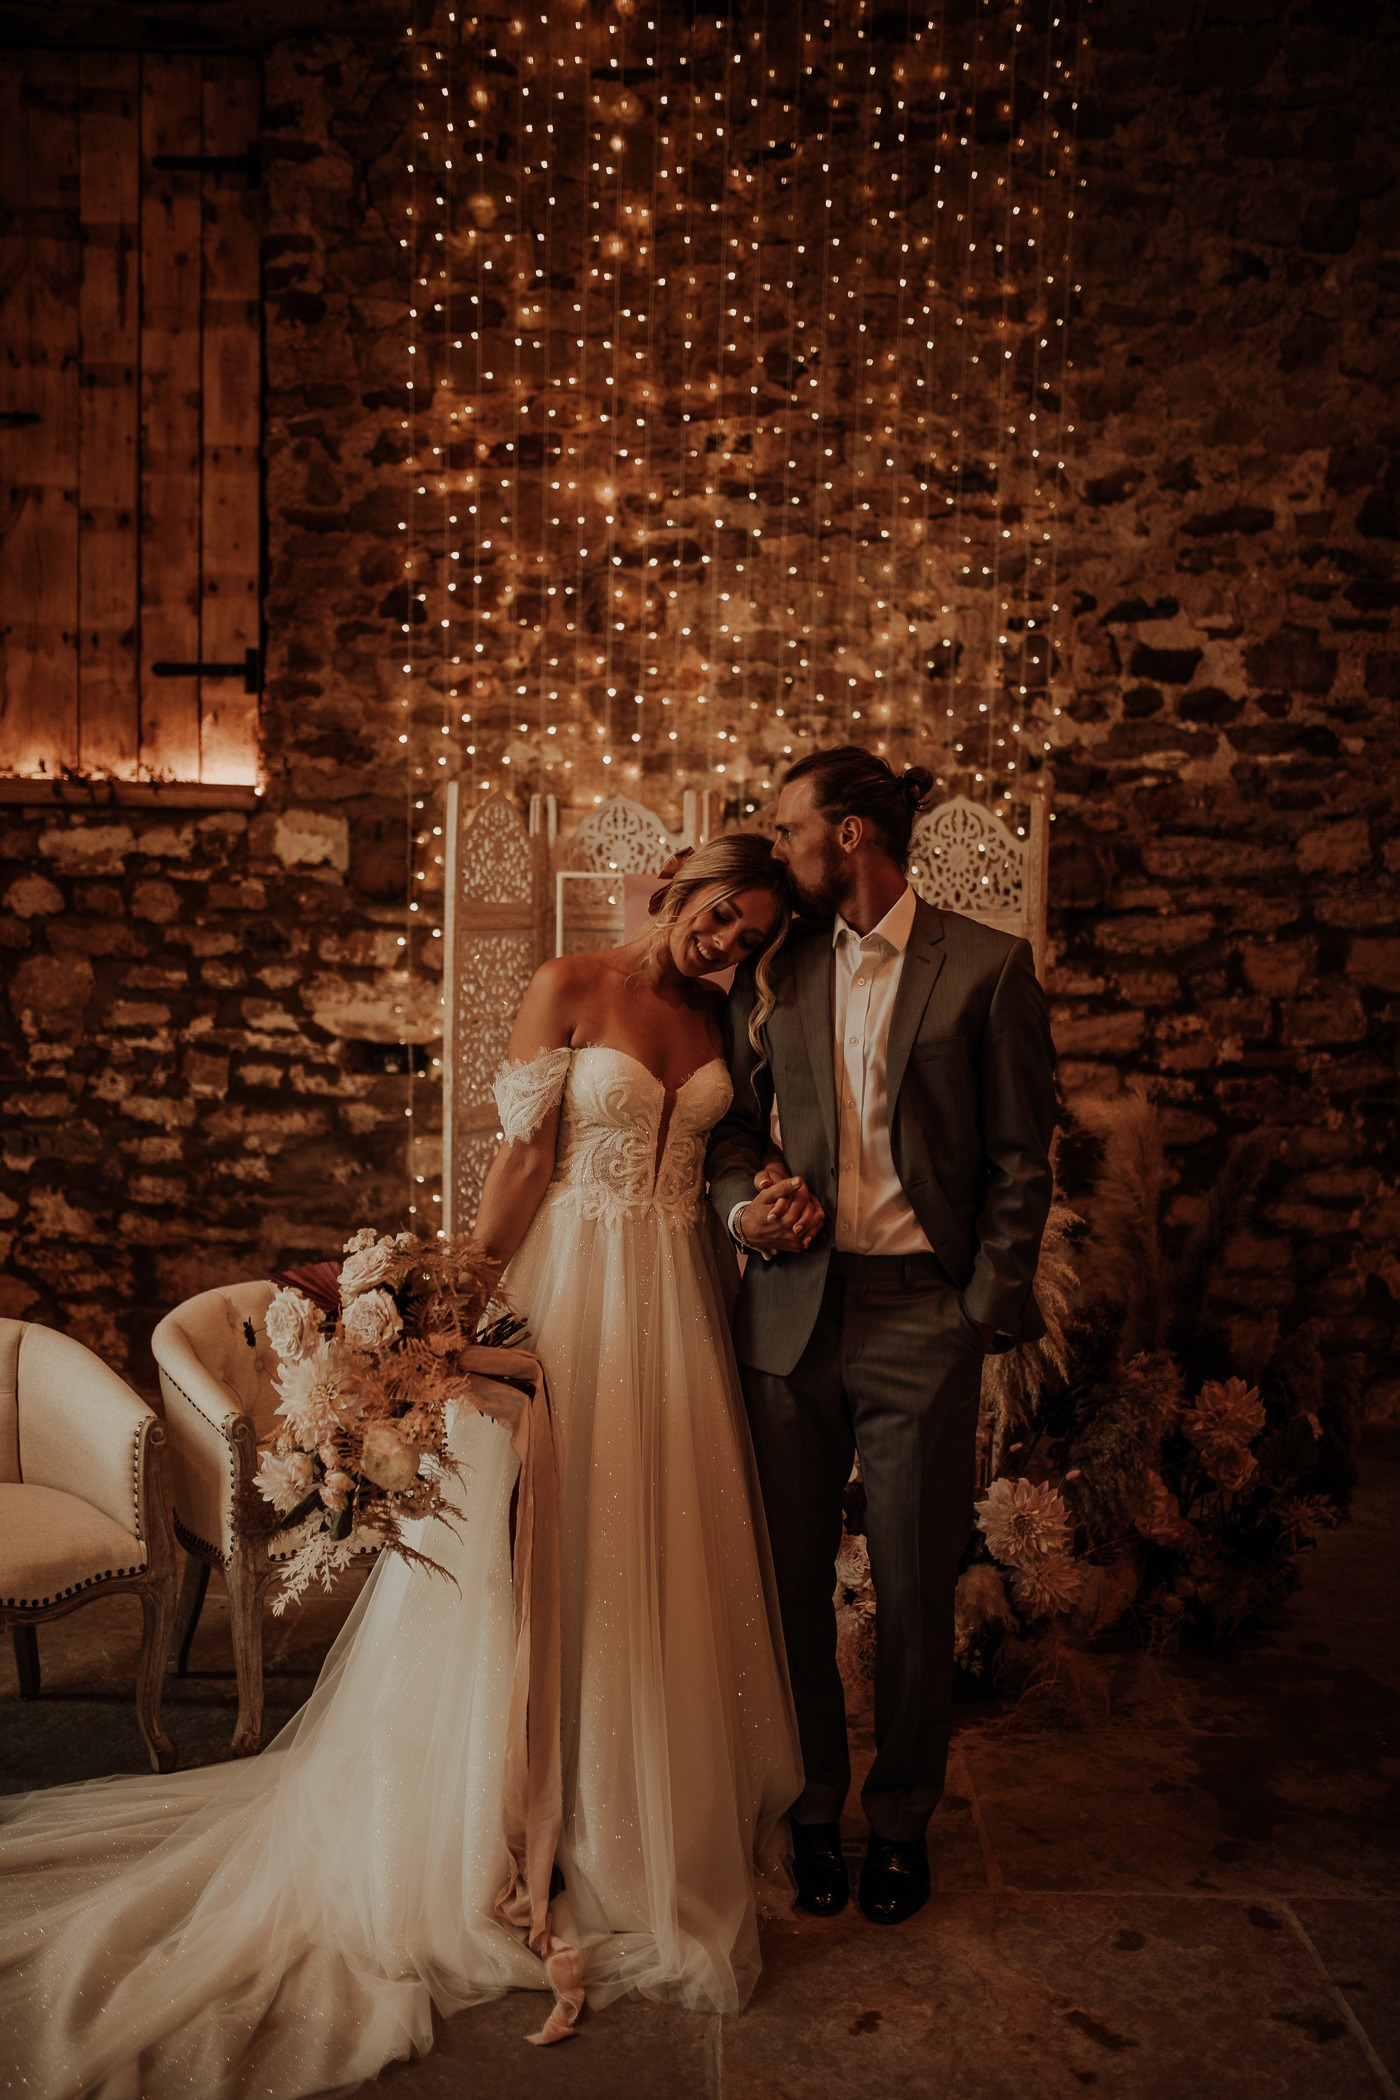 couple standing in front of a fairy twinkle lights DIY wedding backdrop in a dimly lit venue